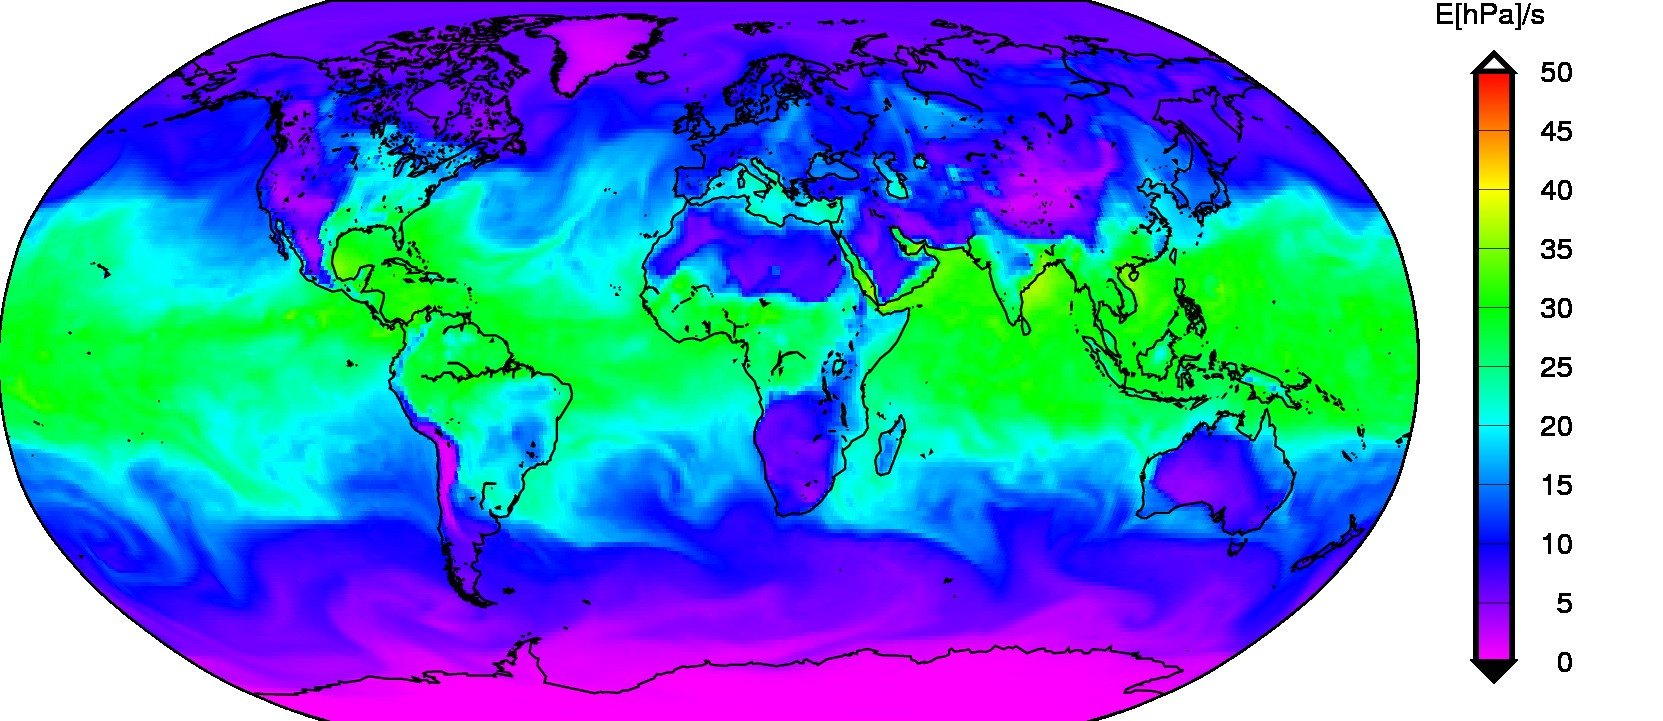 Example global WV pressure derived from the NWM by G-Nut/Shu software